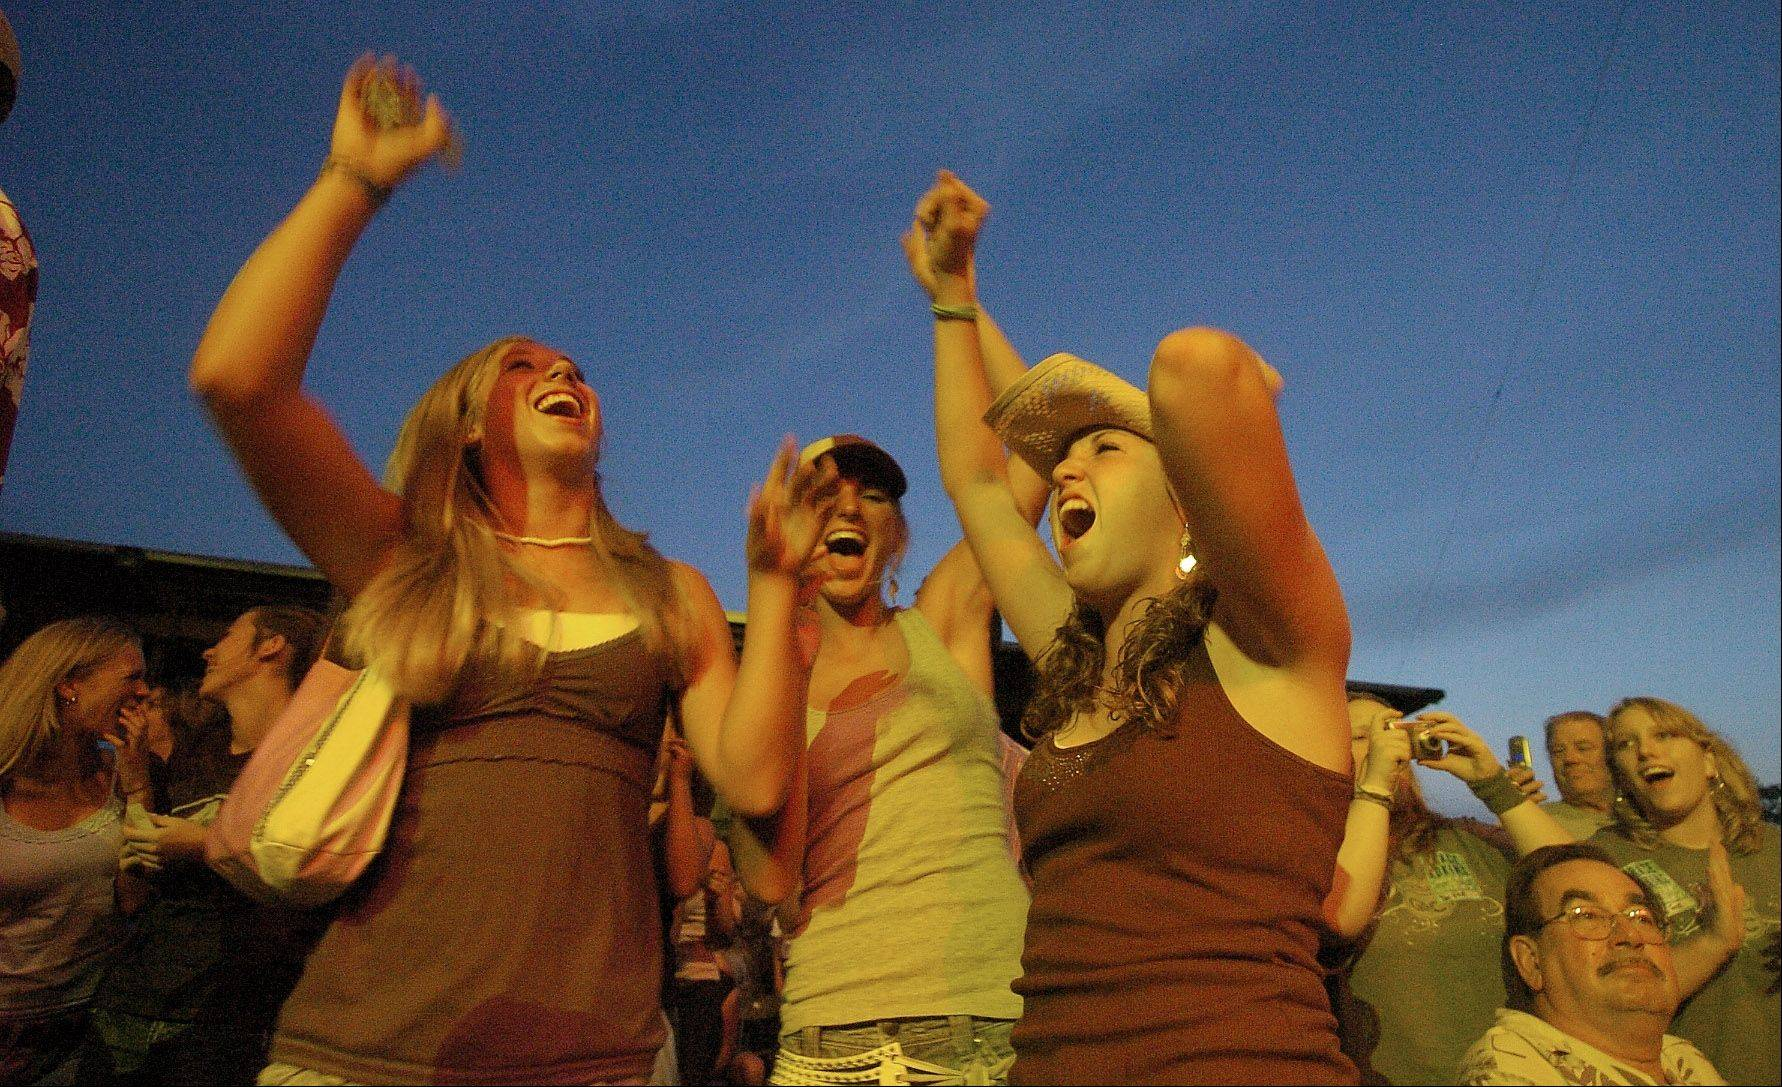 Friends Julie Buchra, Katie Dorsch and Molly Fremgen, all of St. Charles, whoop it up during a concert at the Kane County Fair in St. Charles.